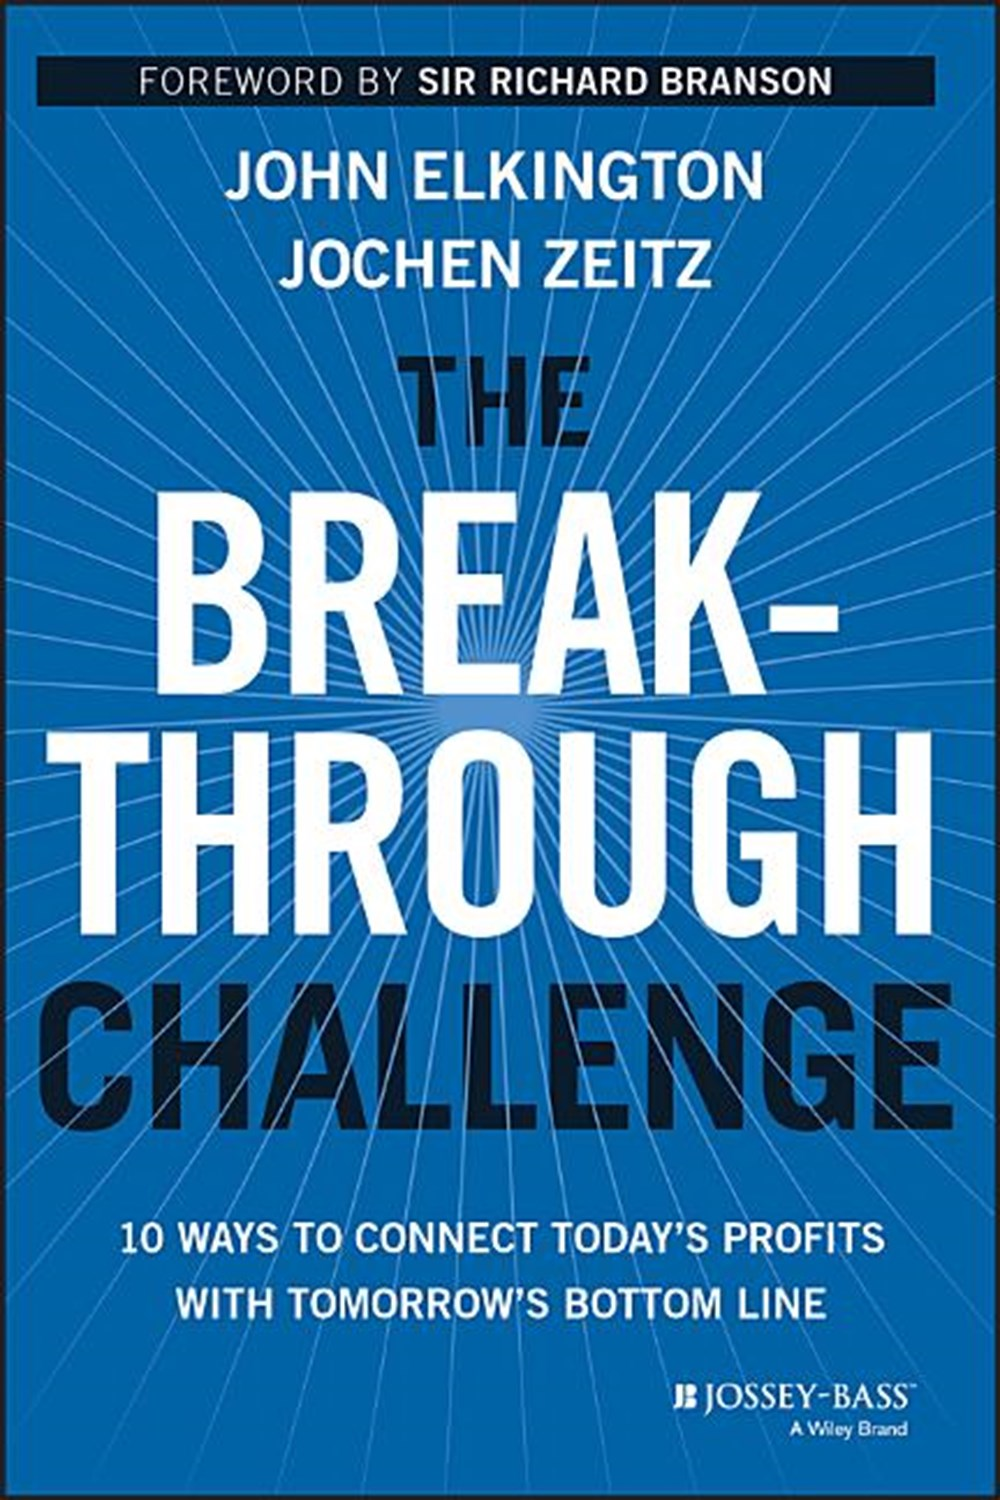 Breakthrough Challenge 10 Ways to Connect Today's Profits with Tomorrow's Bottom Line